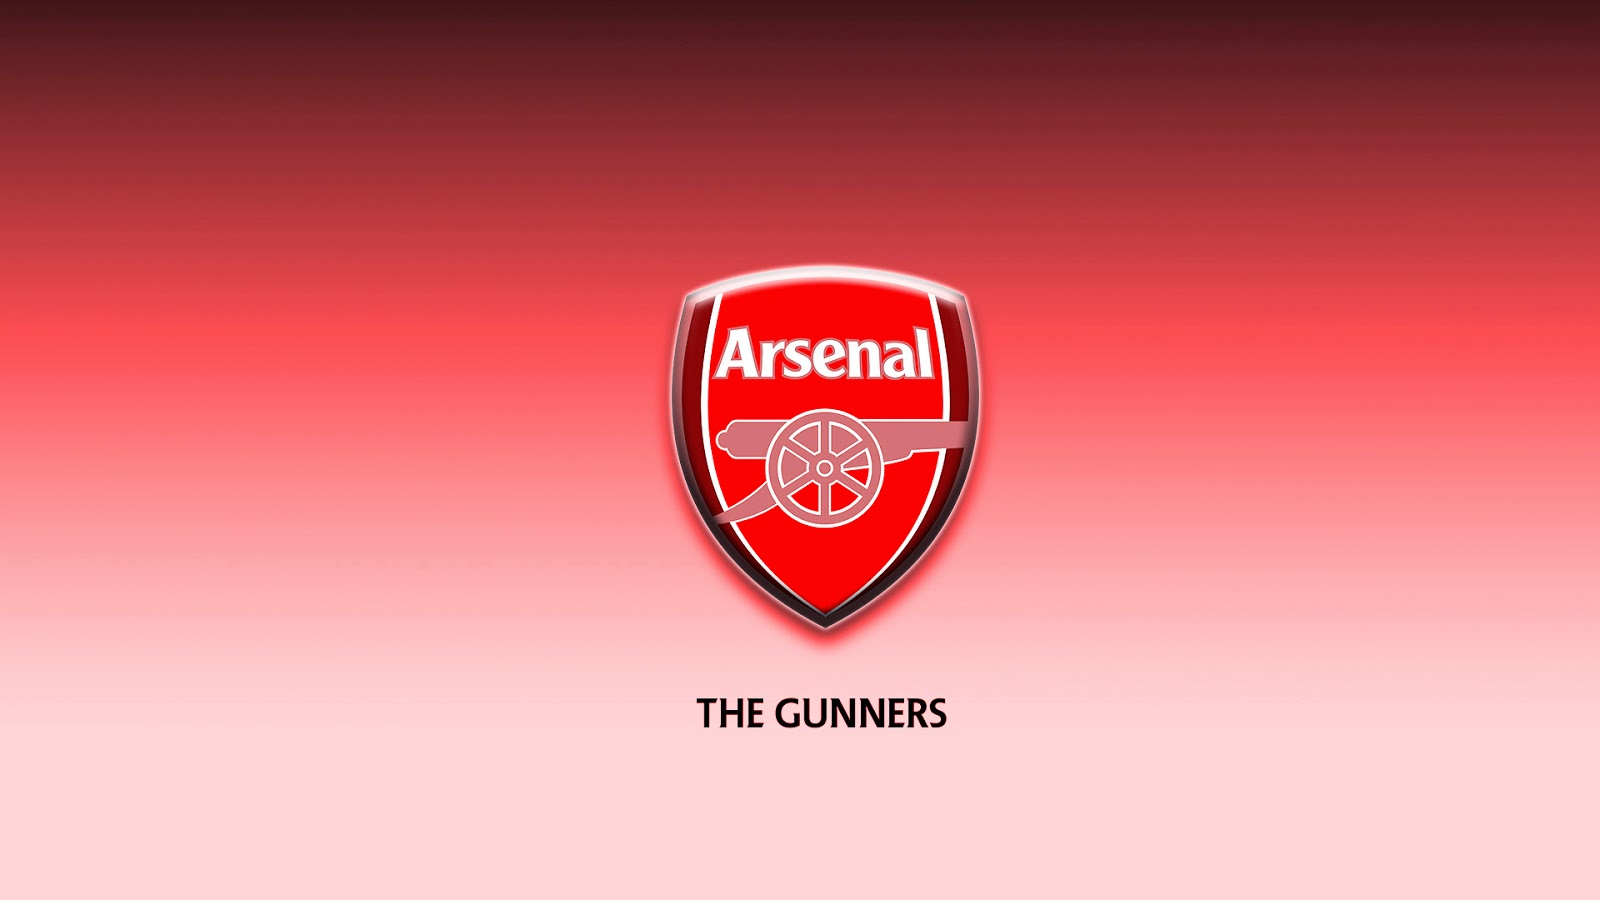 Football Wallpapers Hd For Android Arsenal Football Club Wallpaper Football Wallpaper Hd